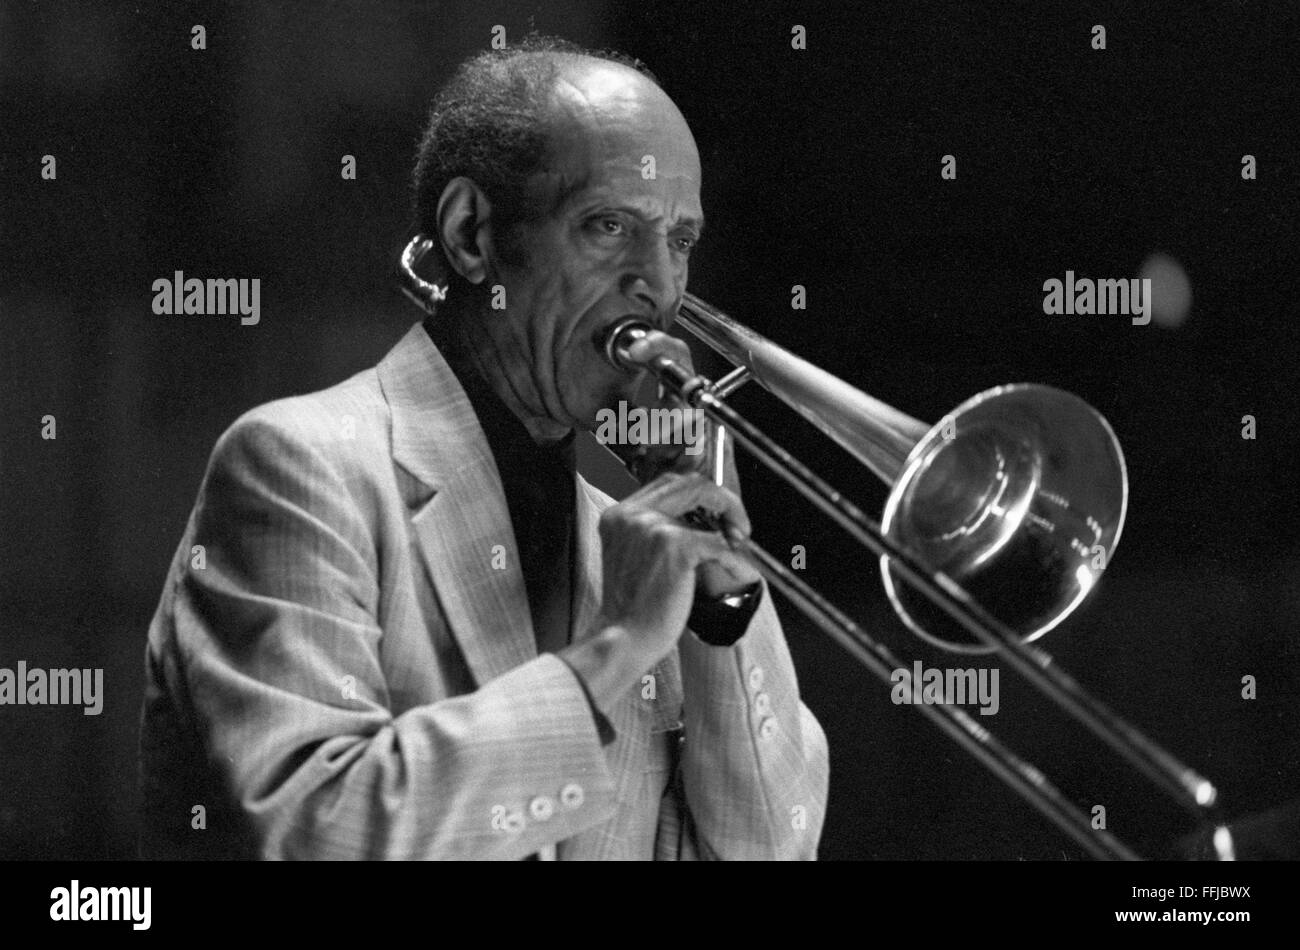 """Vic Dickenson, performing along with Doc Cheatham (not shown in this photo). This concert took place at the """"Great - Stock Image"""